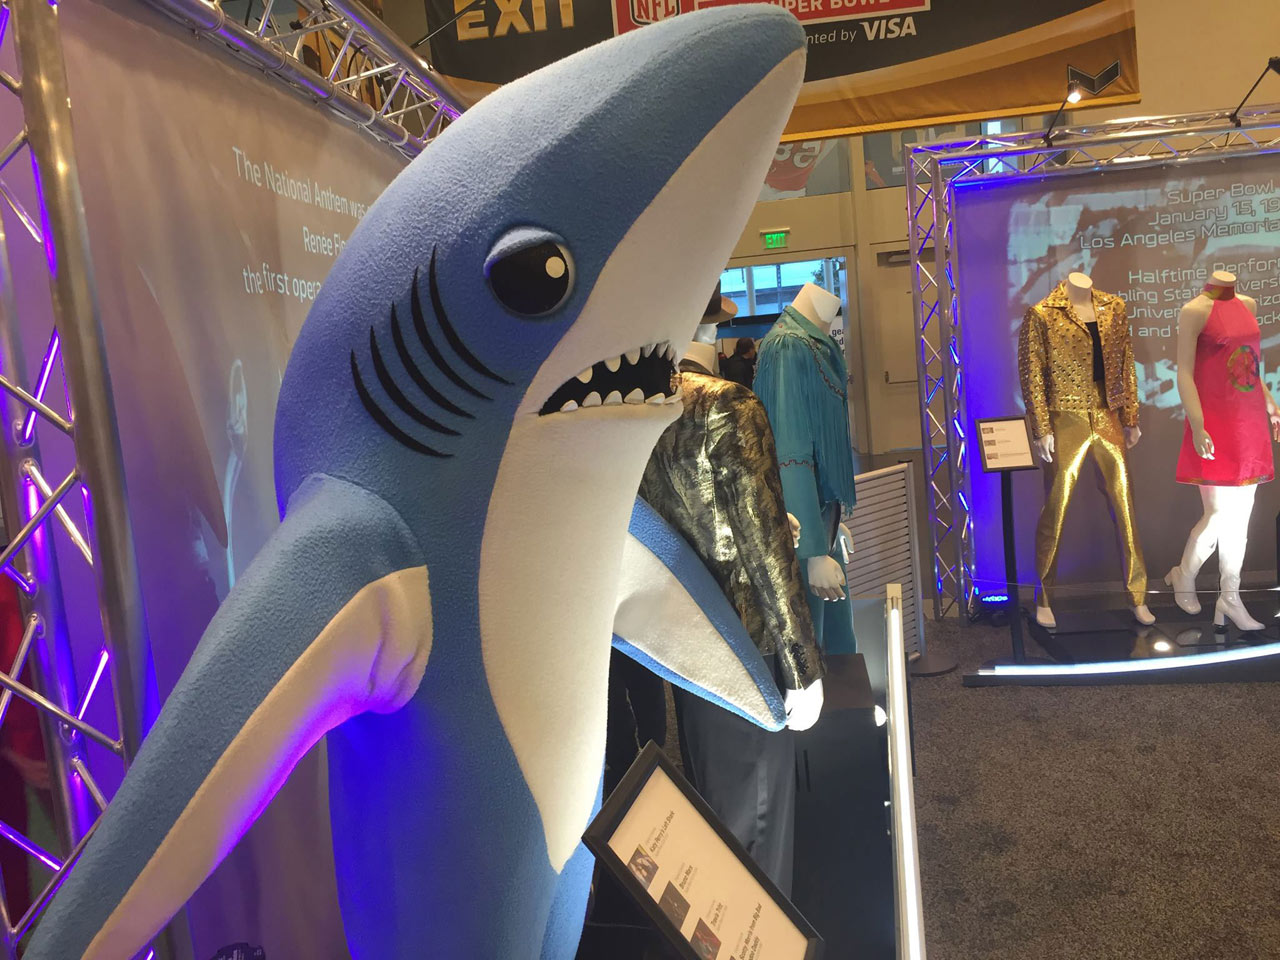 "<div class=""meta image-caption""><div class=""origin-logo origin-image none""><span>none</span></div><span class=""caption-text"">Shark from Katy Perry halftime show at Super Bowl, as seen at NFL experience in San Francisco, Sunday, January 31, 2016. (KGO-TV)</span></div>"